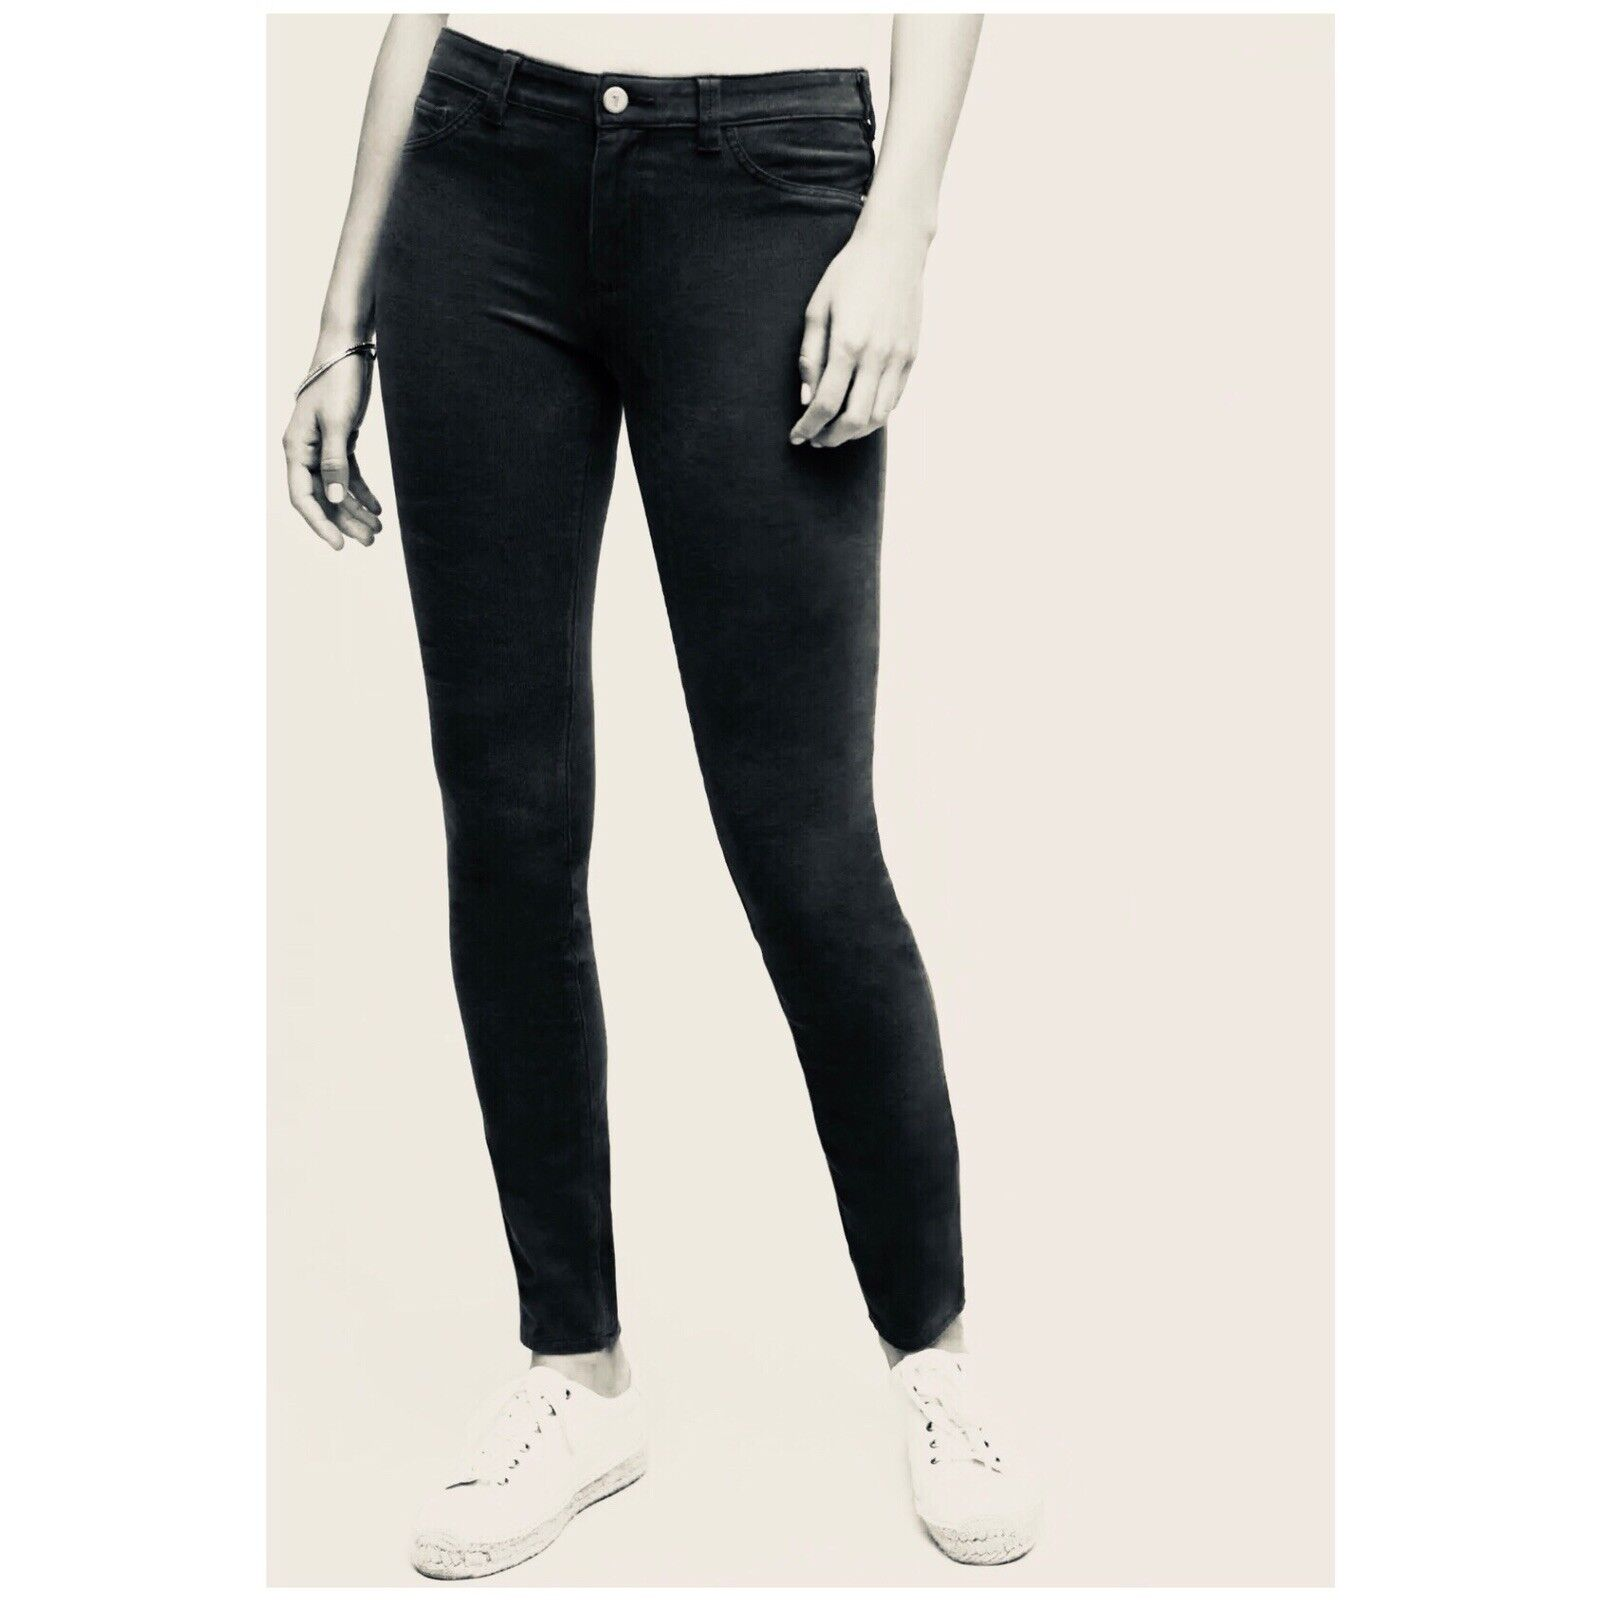 Anthropologie Pilcro and the Letterpress Legging Woman Size 27 Corduroy Jeans